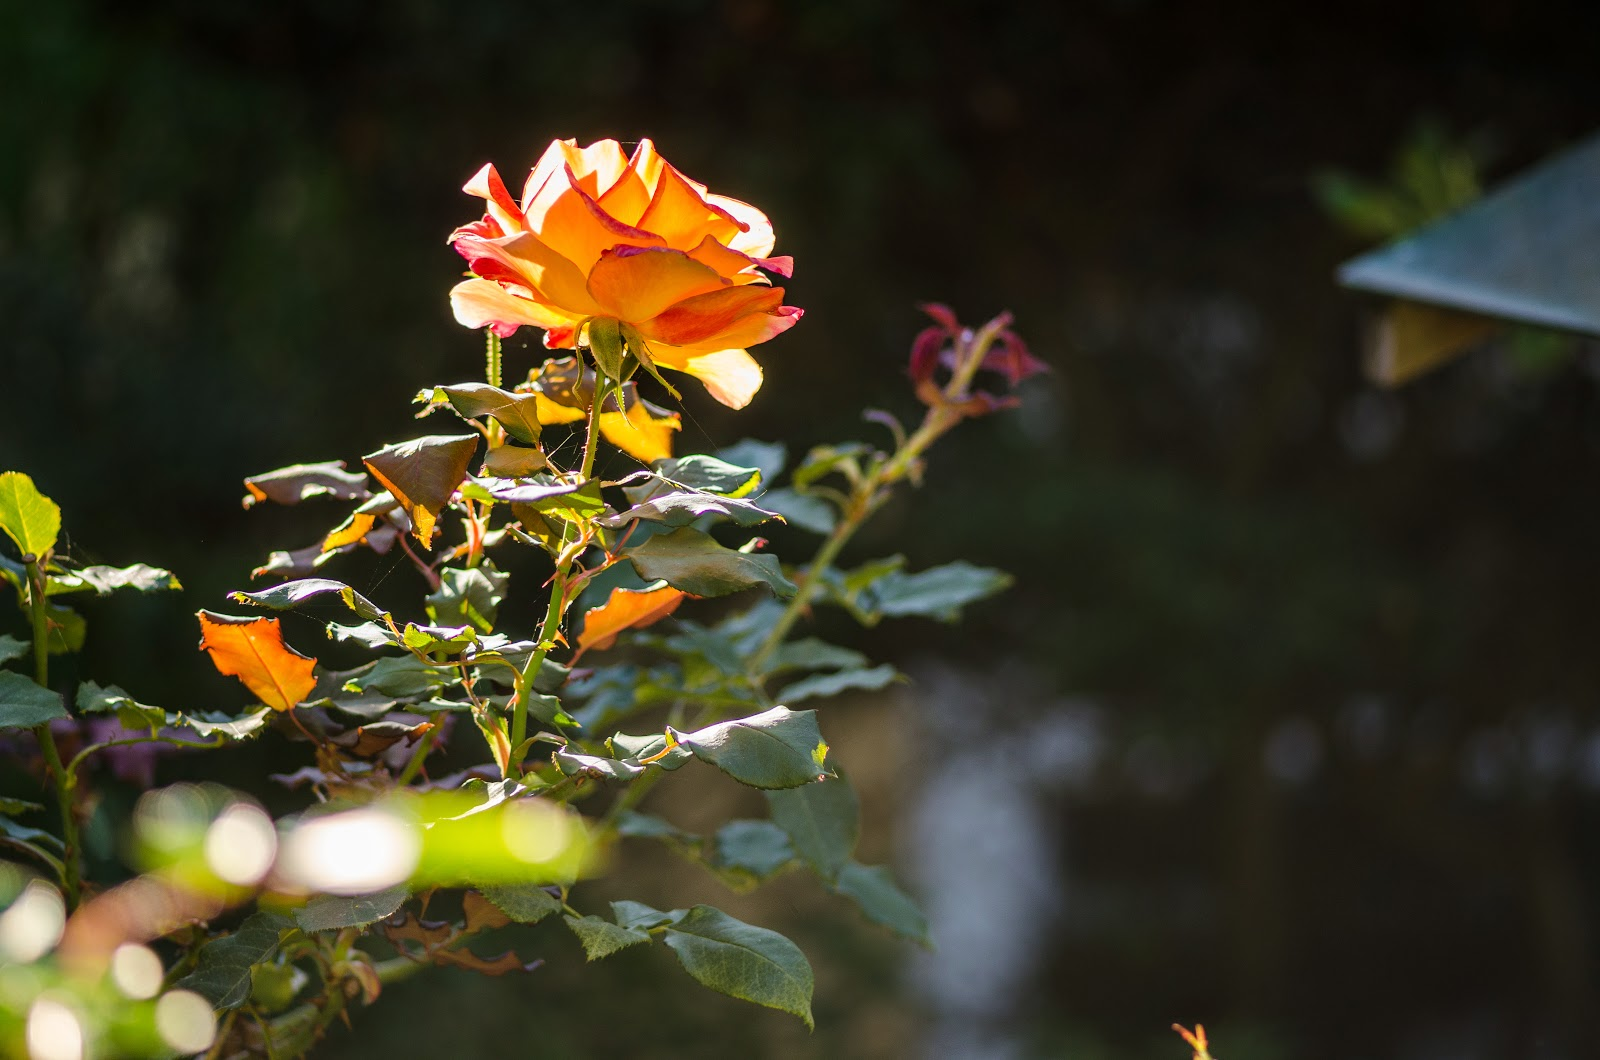 Flowers in the garden at Kachoe Dechen Ling. Photo by Chris Majors.